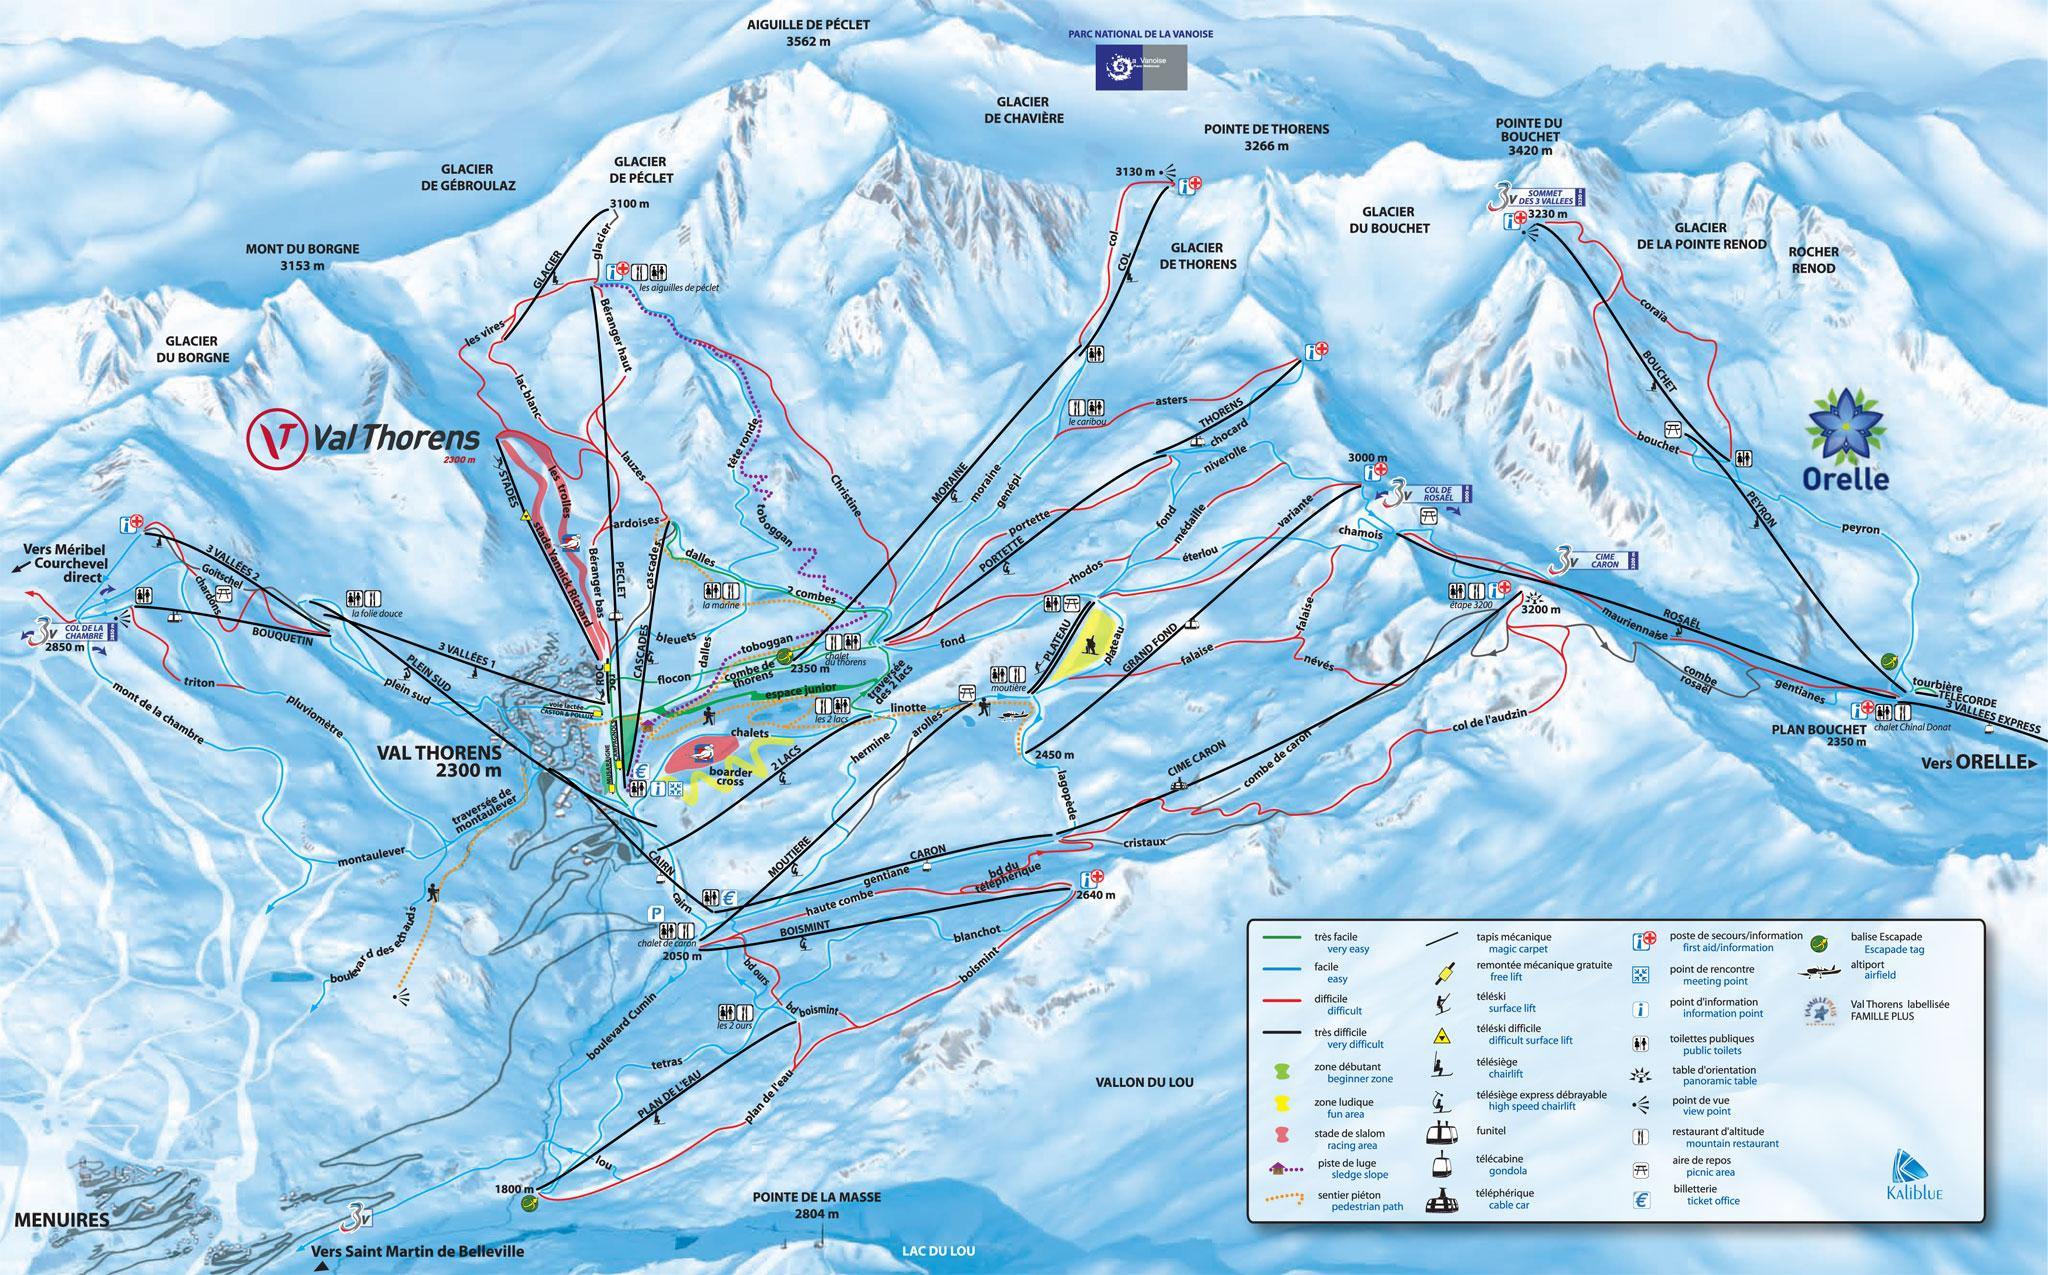 Piste Maps for French Ski Resorts J2Ski